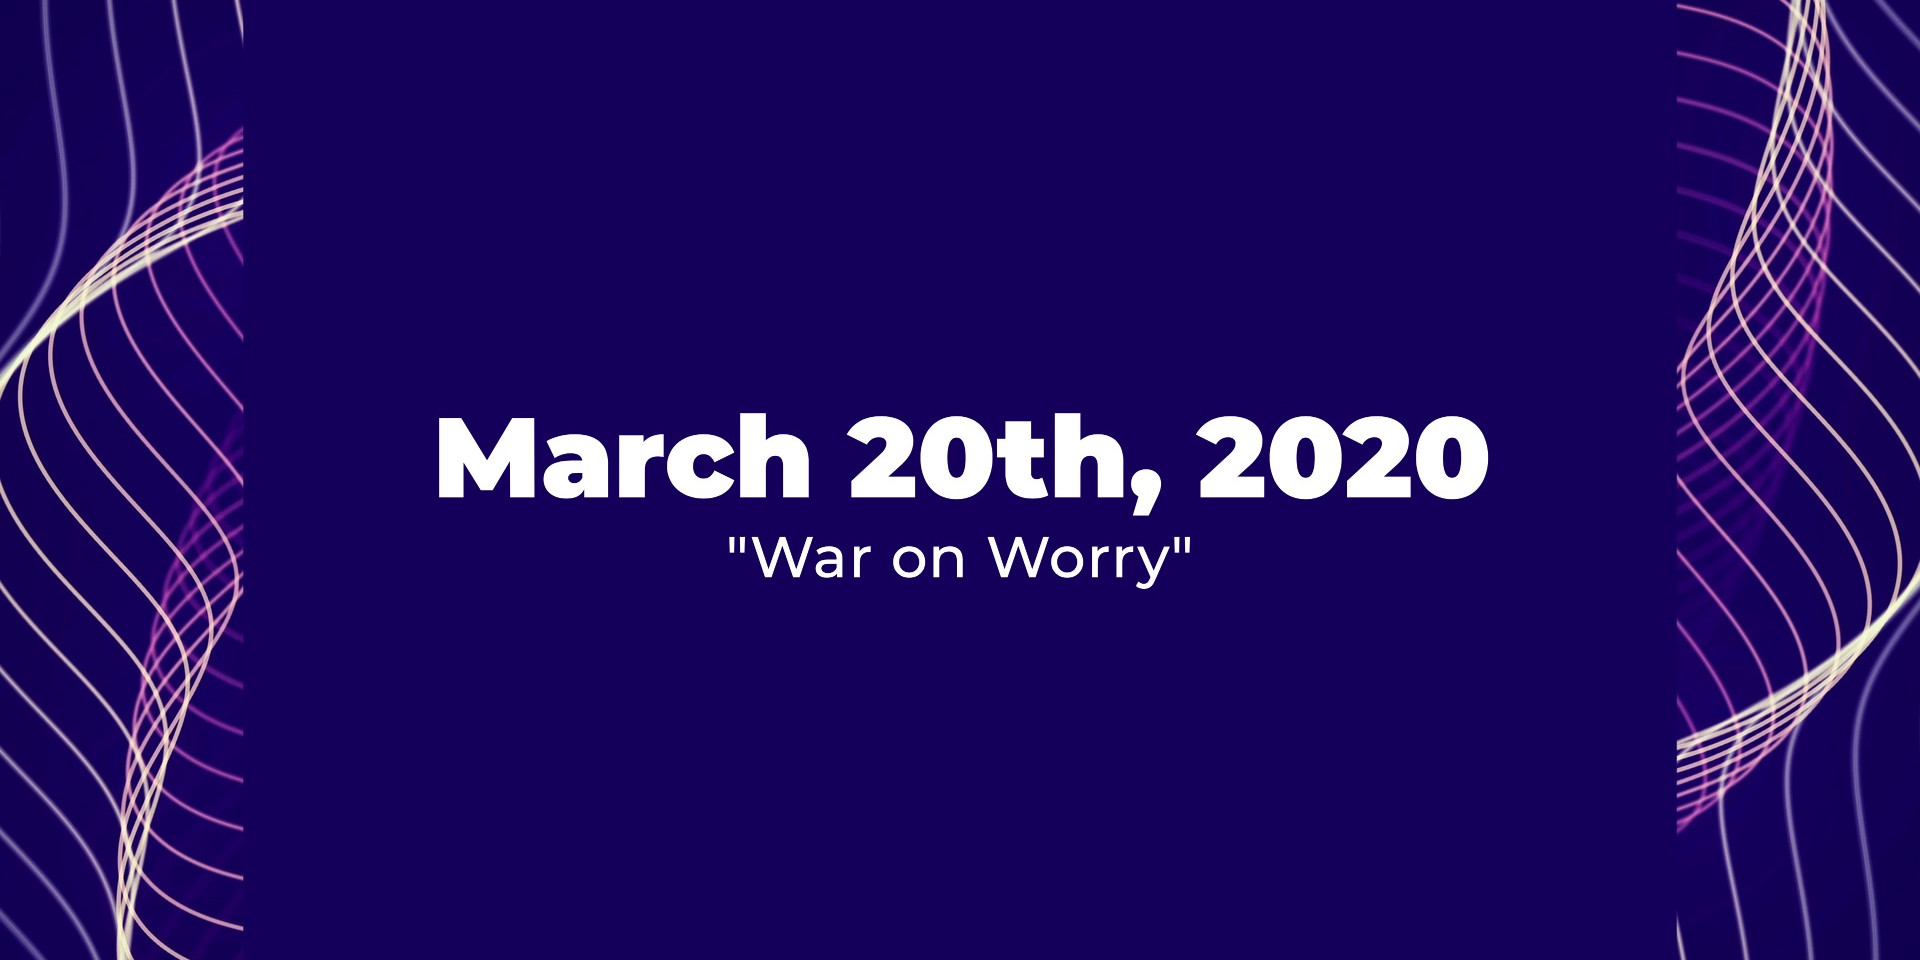 War on Worry